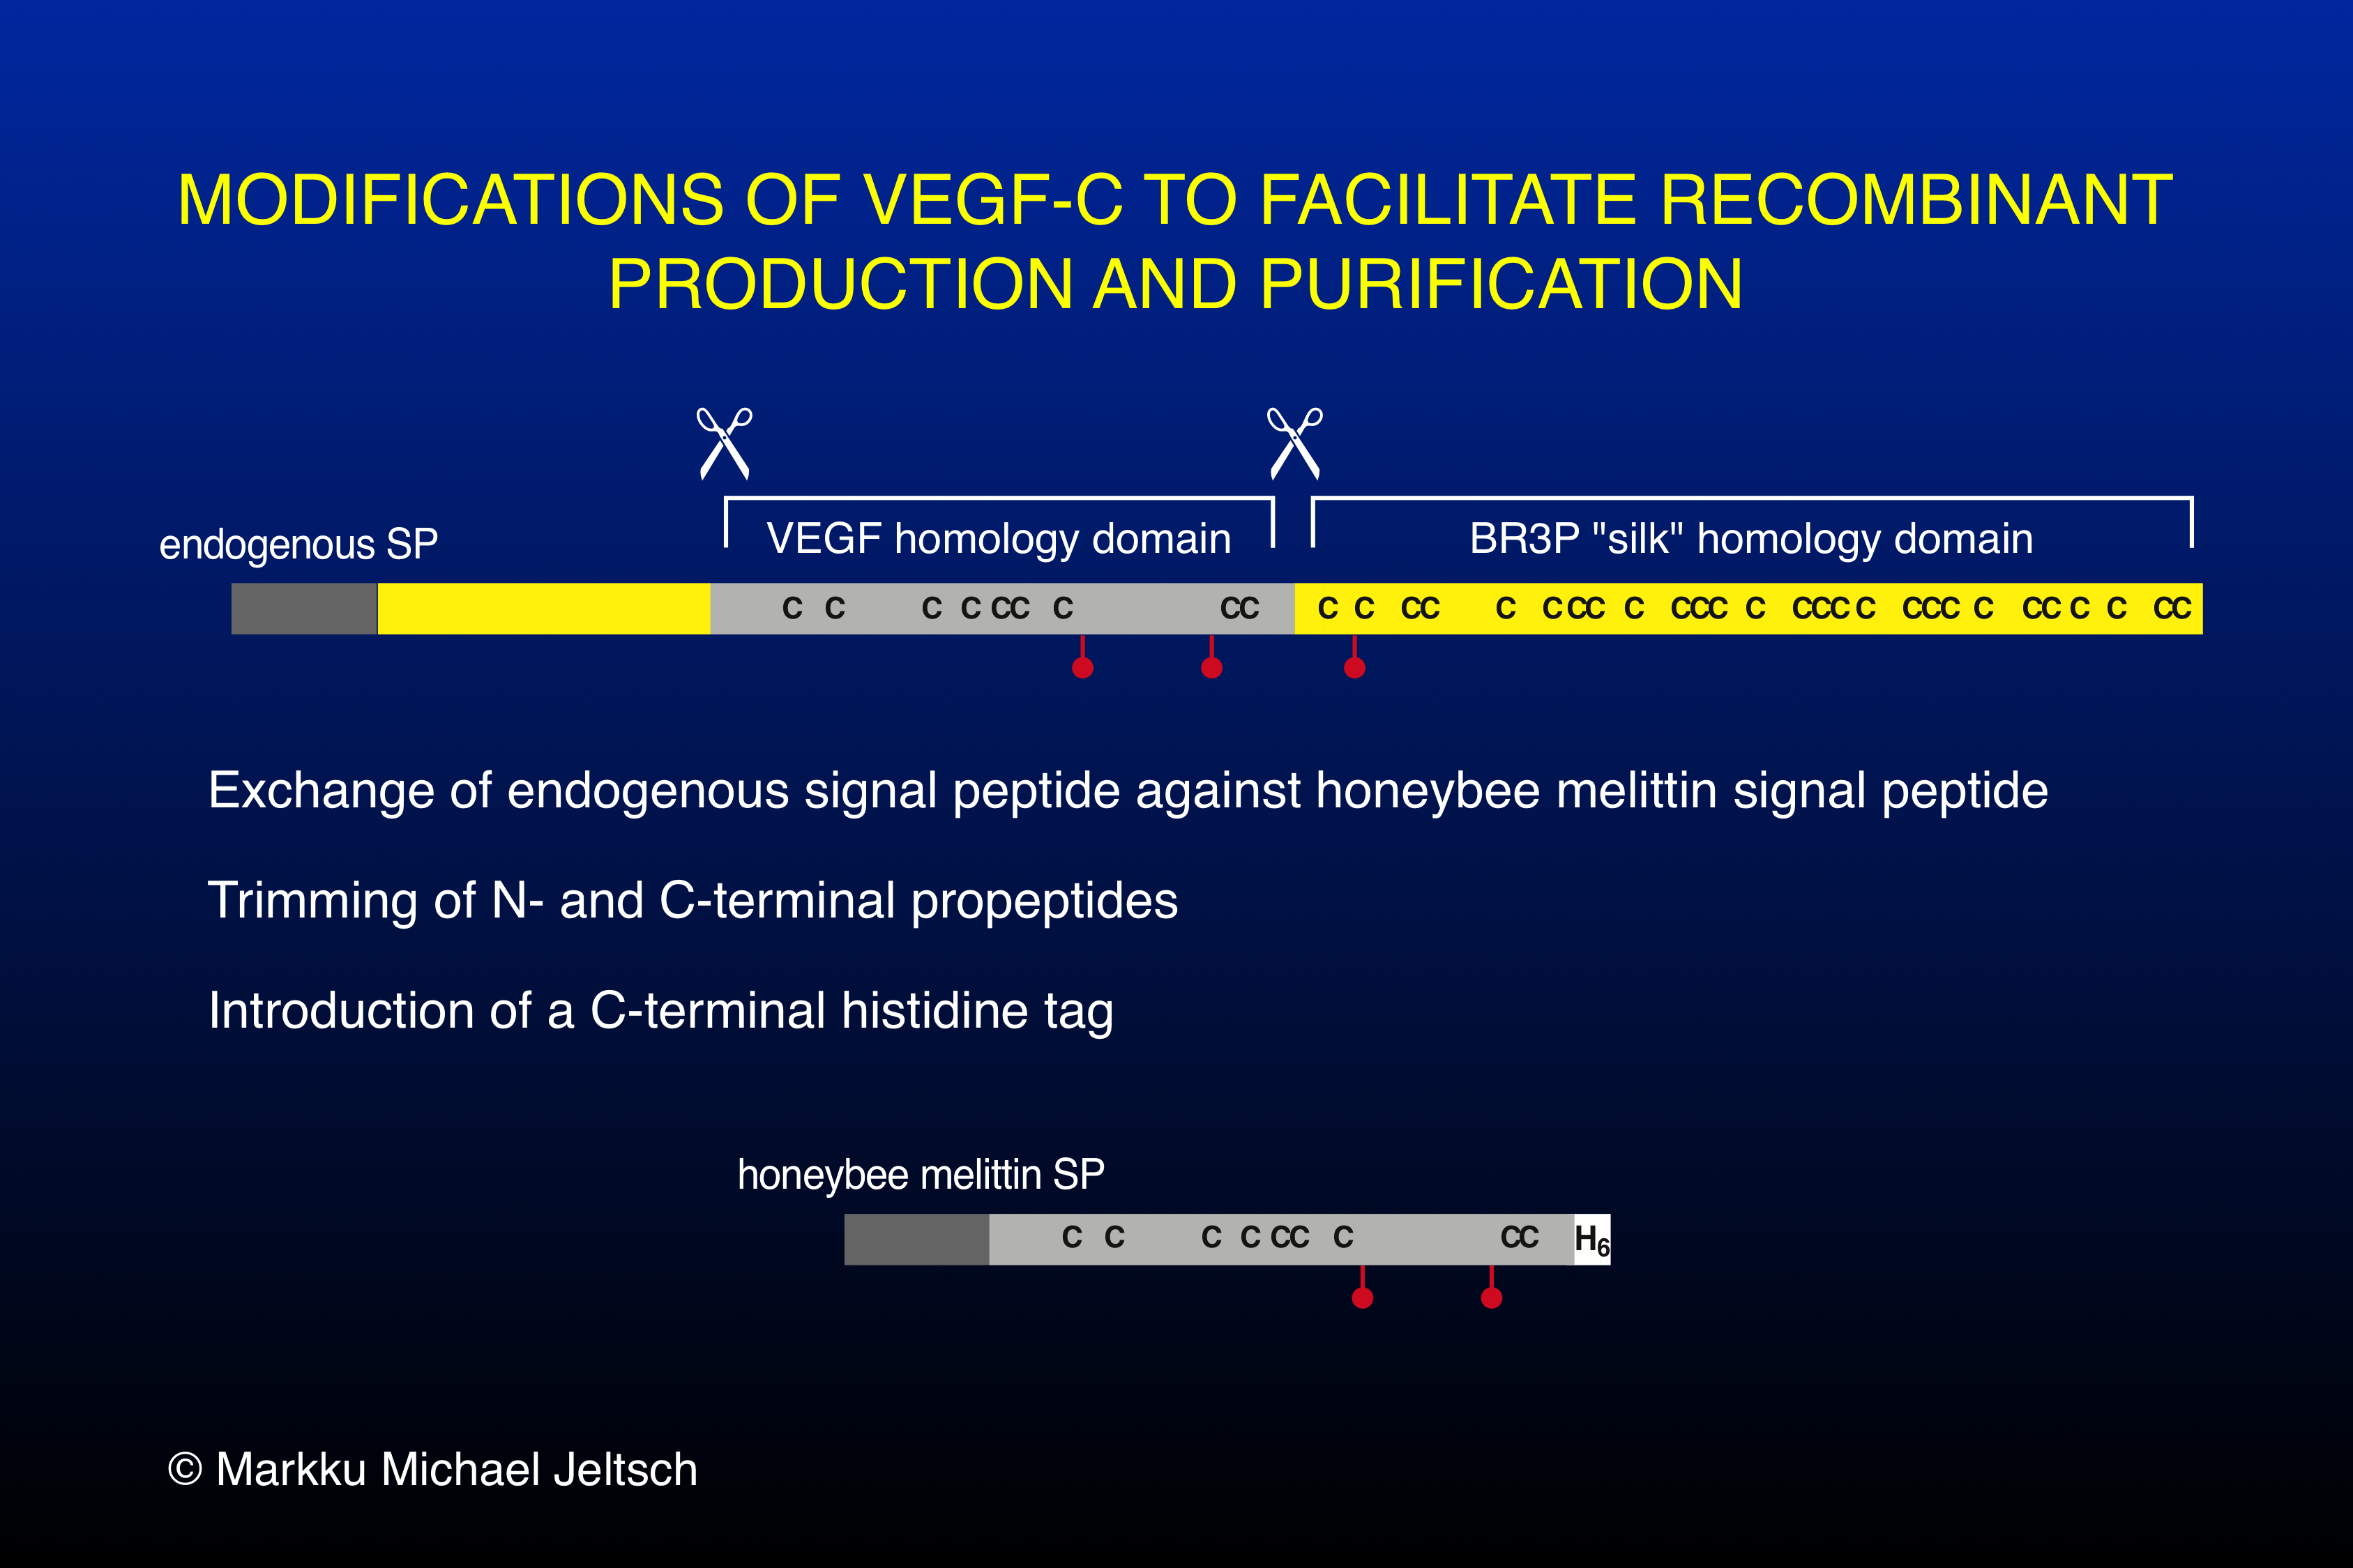 VEGF-C modifications to facilitate recombinant protein production & purification